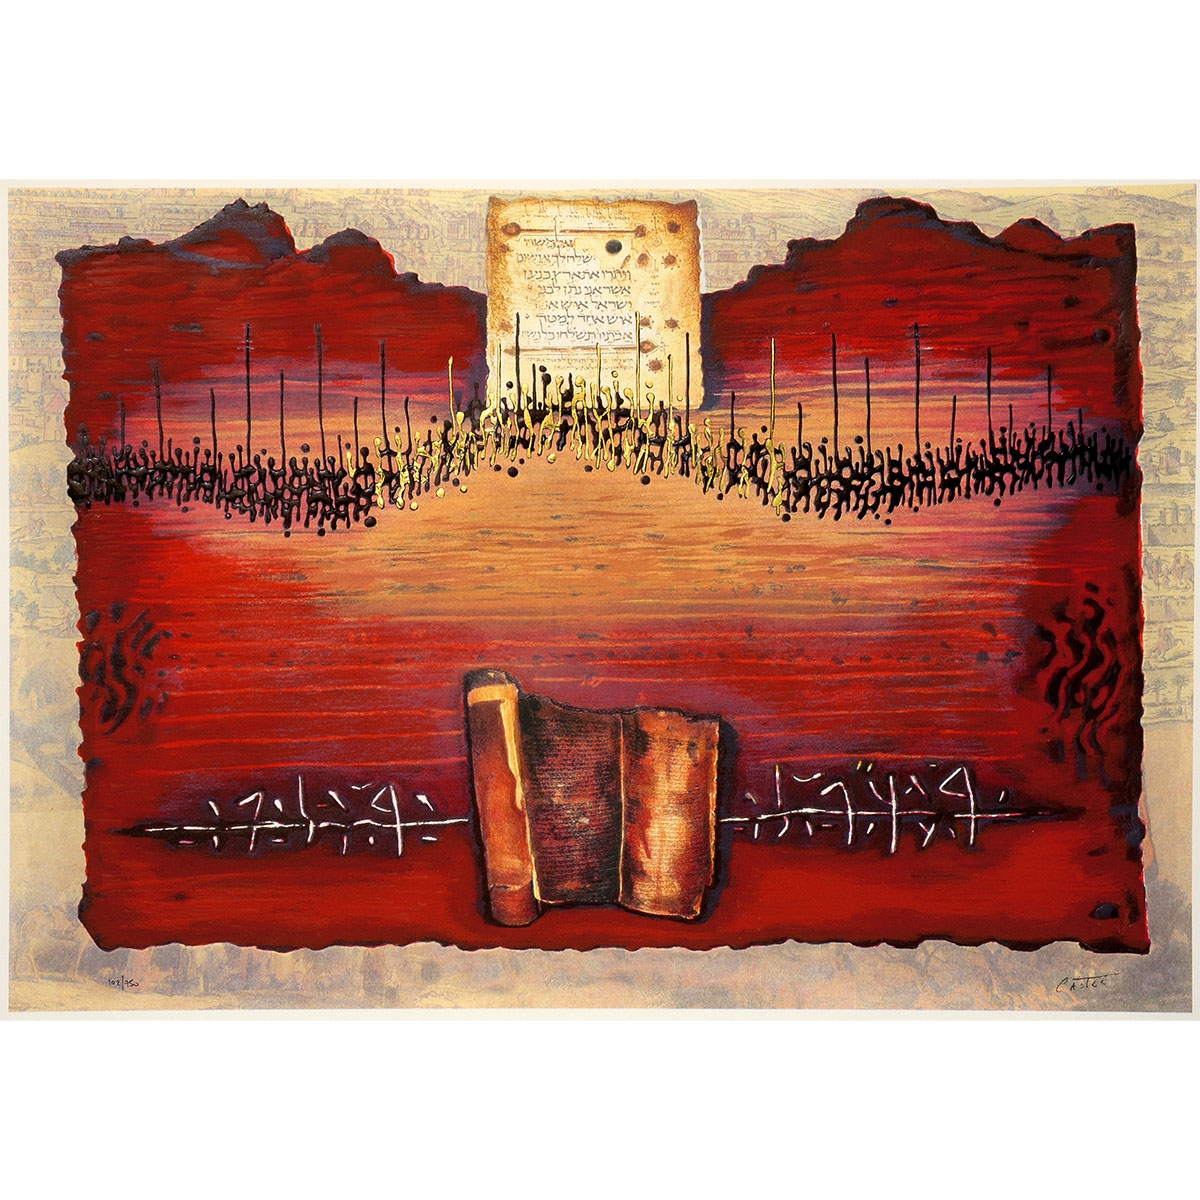 Limited Edition Serigraph Of Moshe Castel S Land Of Canaan